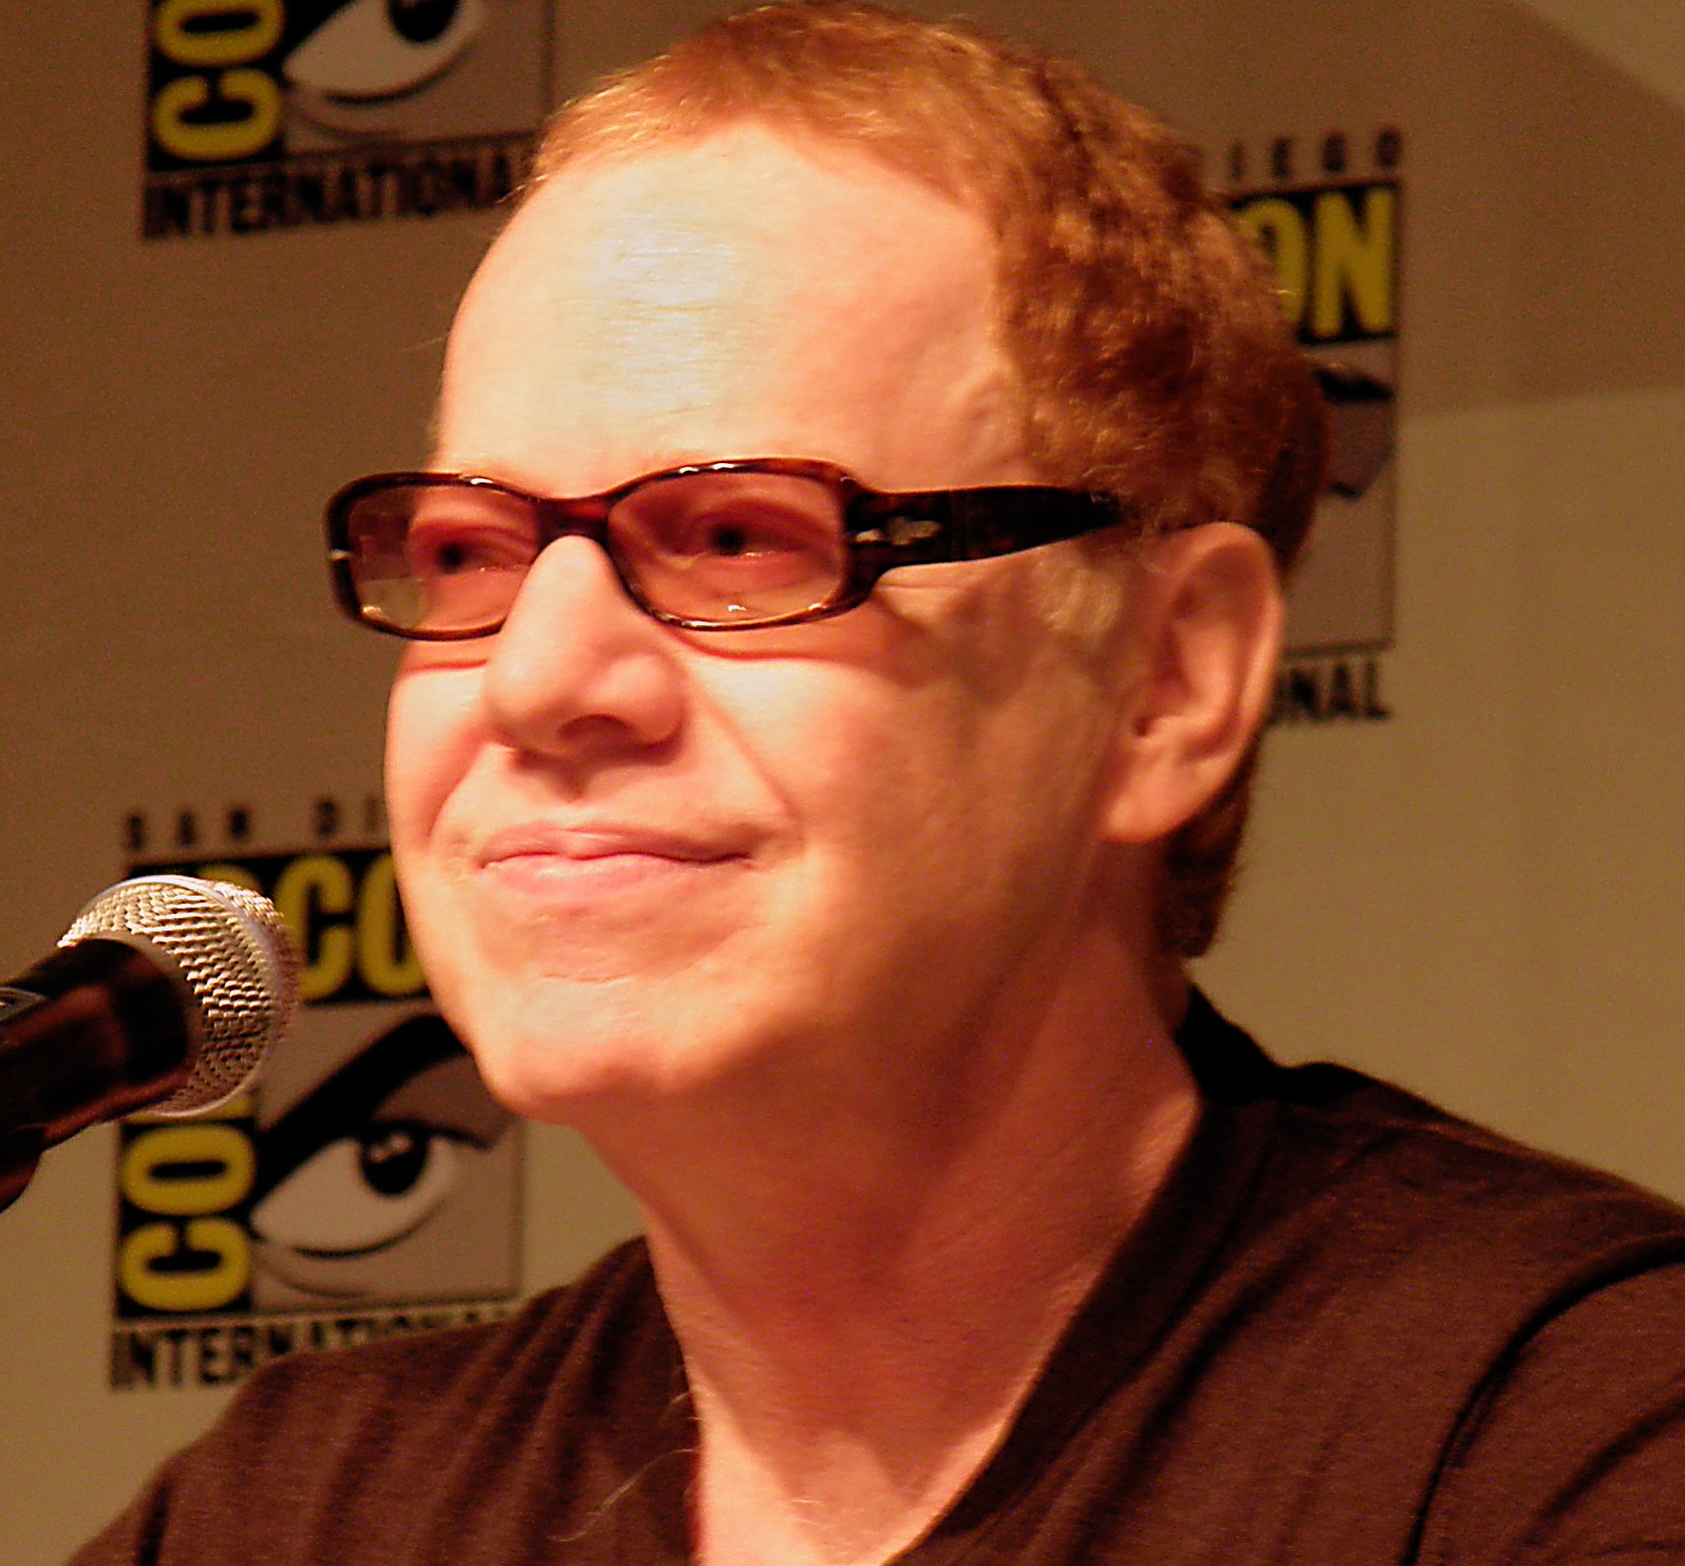 Elfman at the 2010 [[San Diego Comic-Con International|San Diego Comic-Con]]